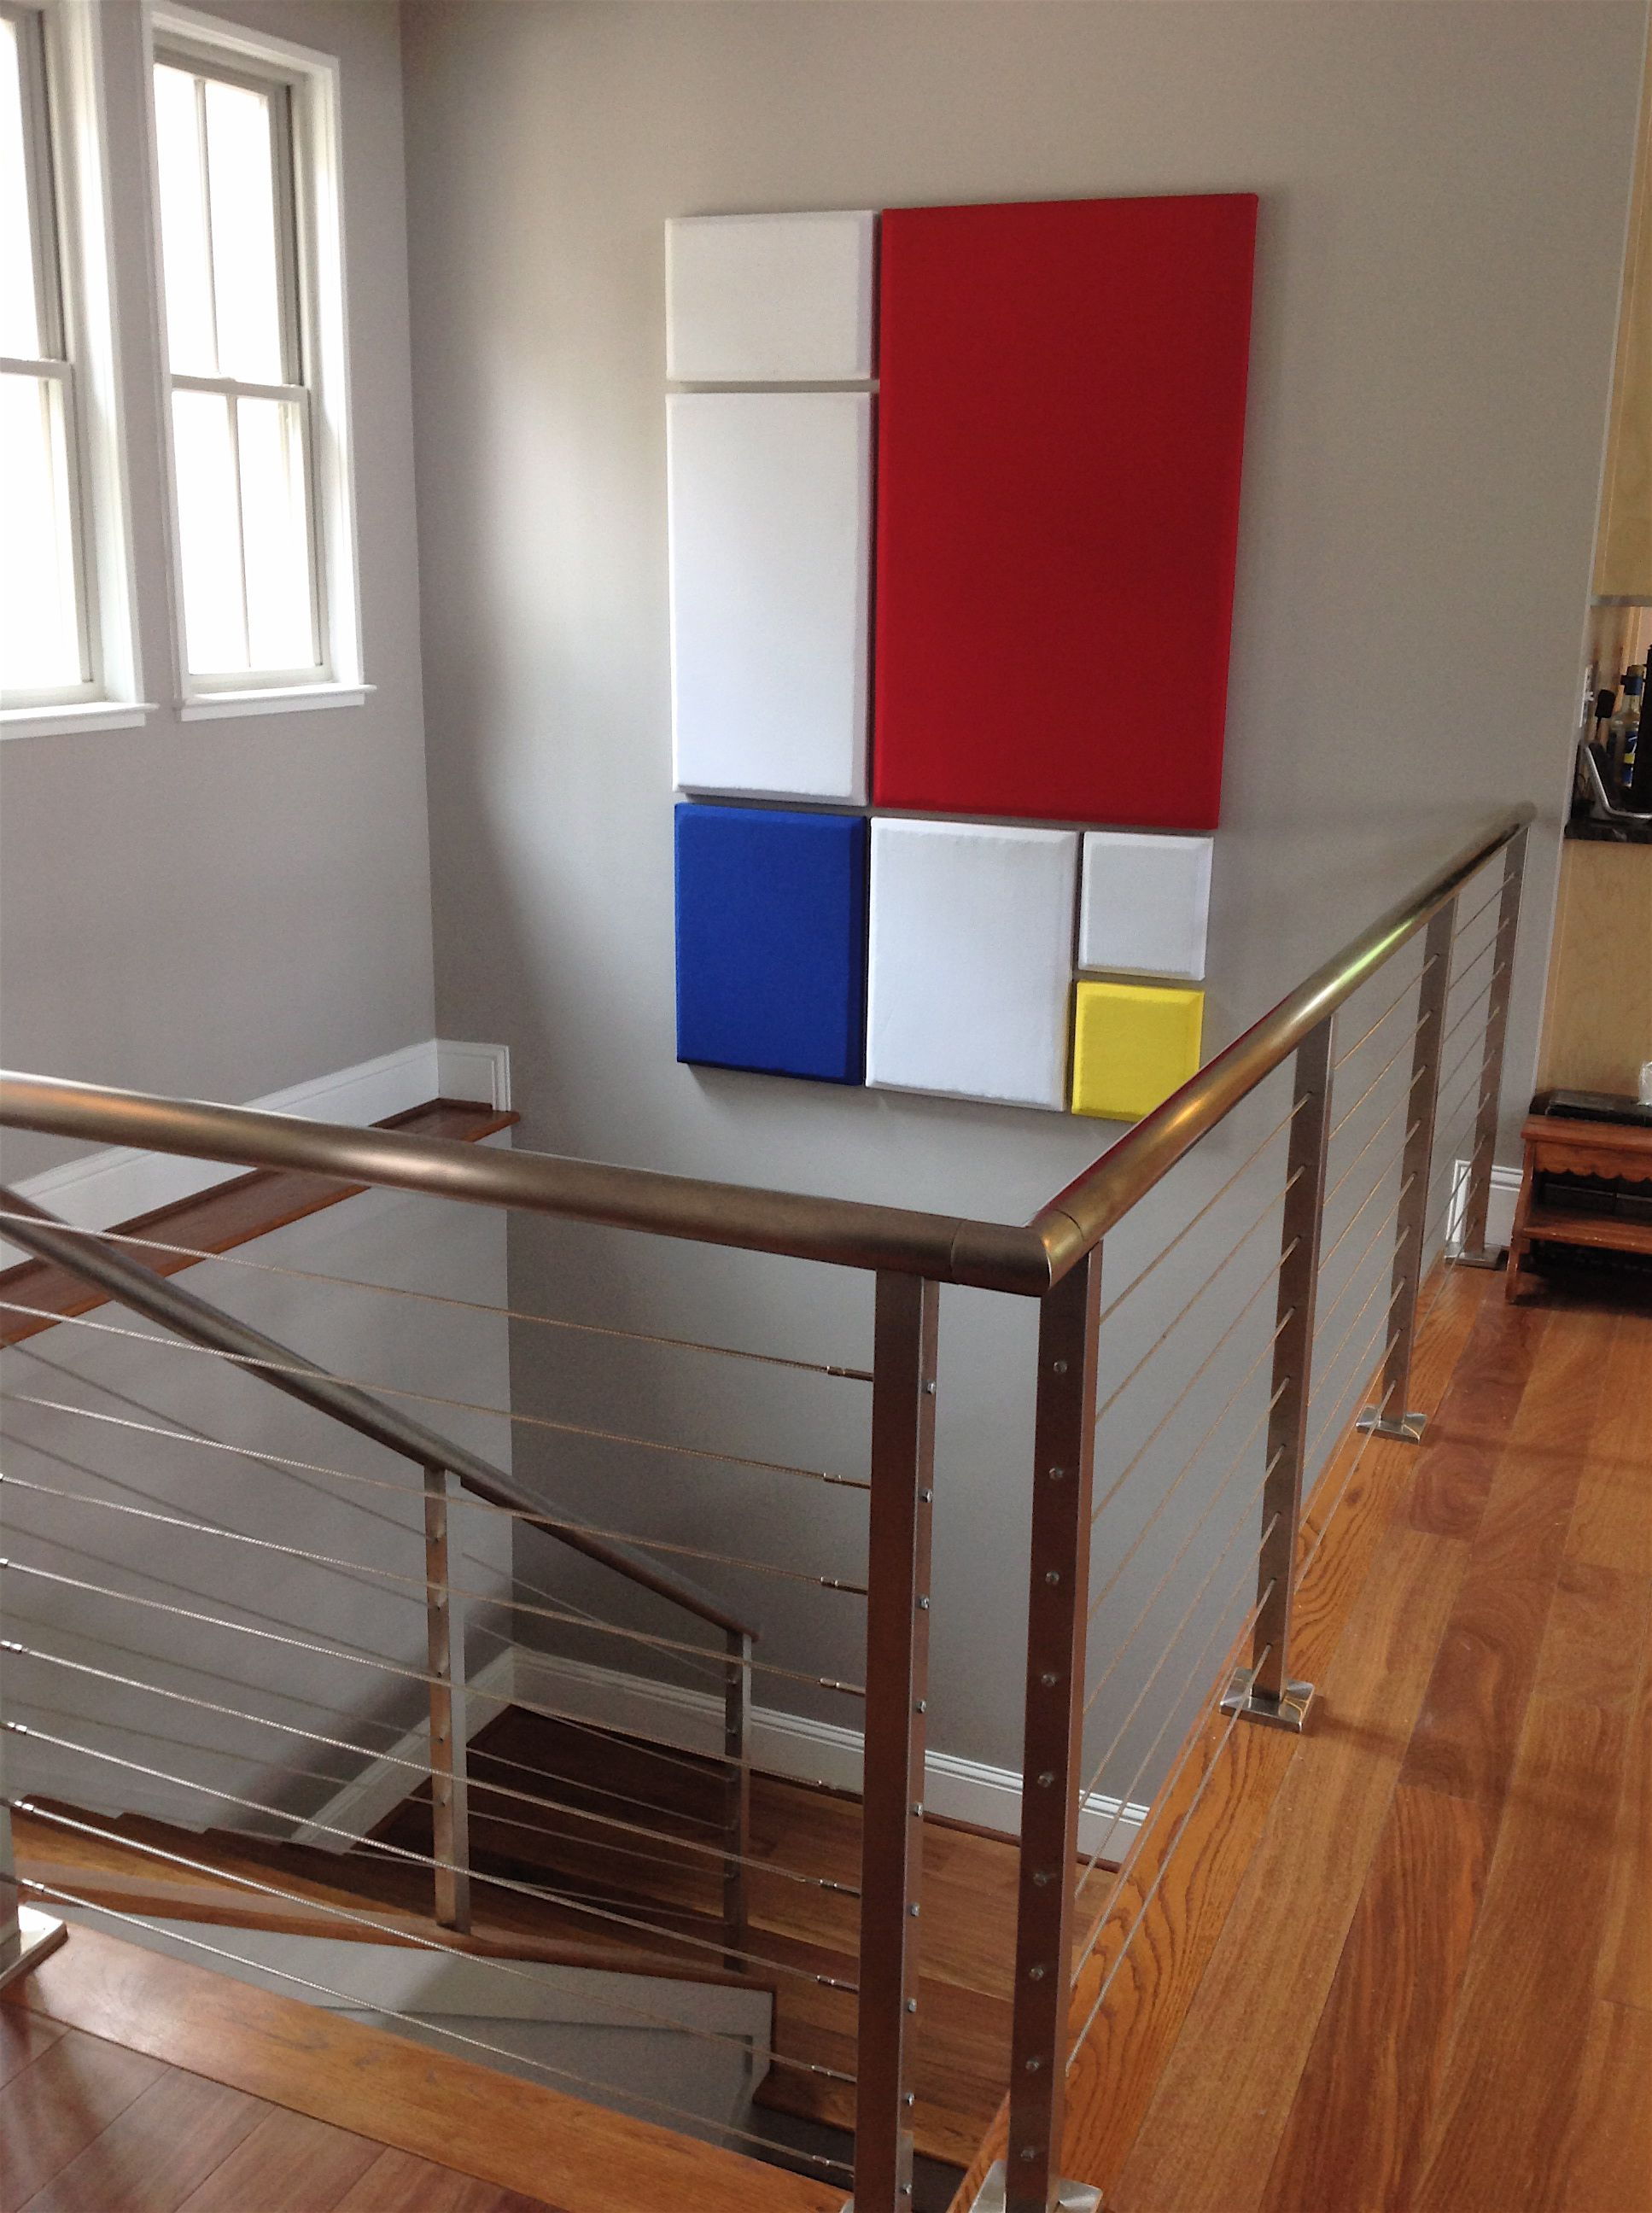 Diy acoustic panels for home theater great idea to make